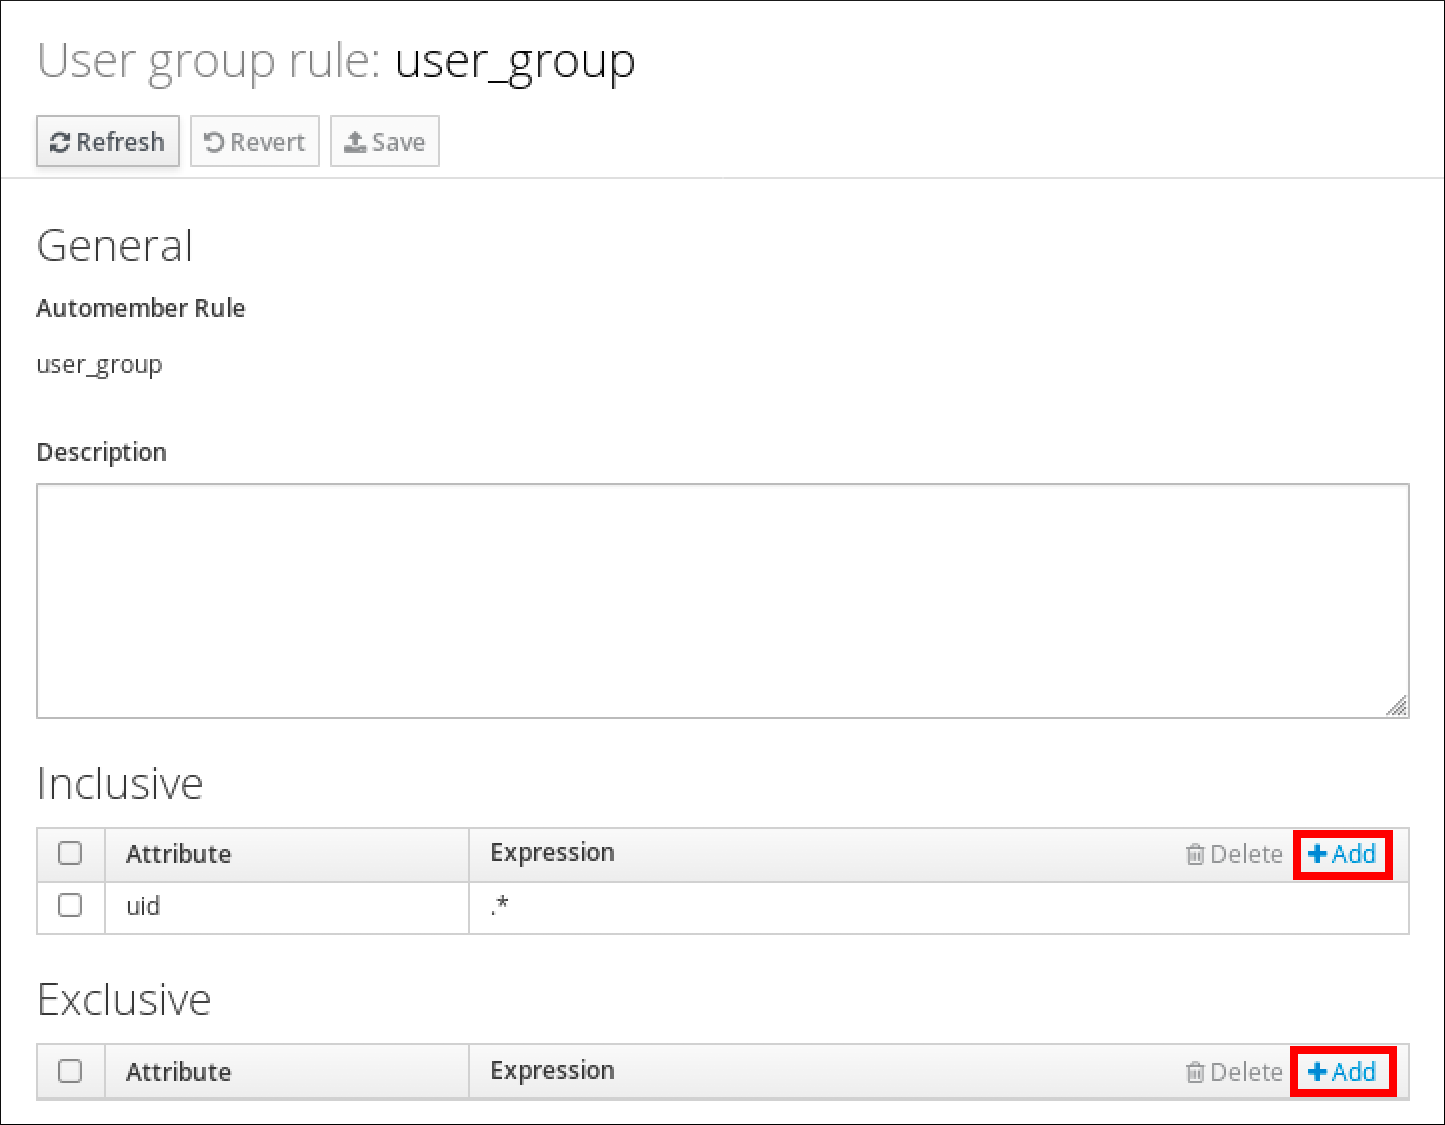 """A screenshot of the User group rule page displaying attributes for the user_group rule. The """"Inclusive"""" section has a table with an """"Attribute"""" column and an """"Expression"""" column with an entry for the Attribute """"uid"""" and its Expression is """".*"""". At the bottom is the Exclusive section which also has a table with an Attribute column and an Expression column but it has no entries."""